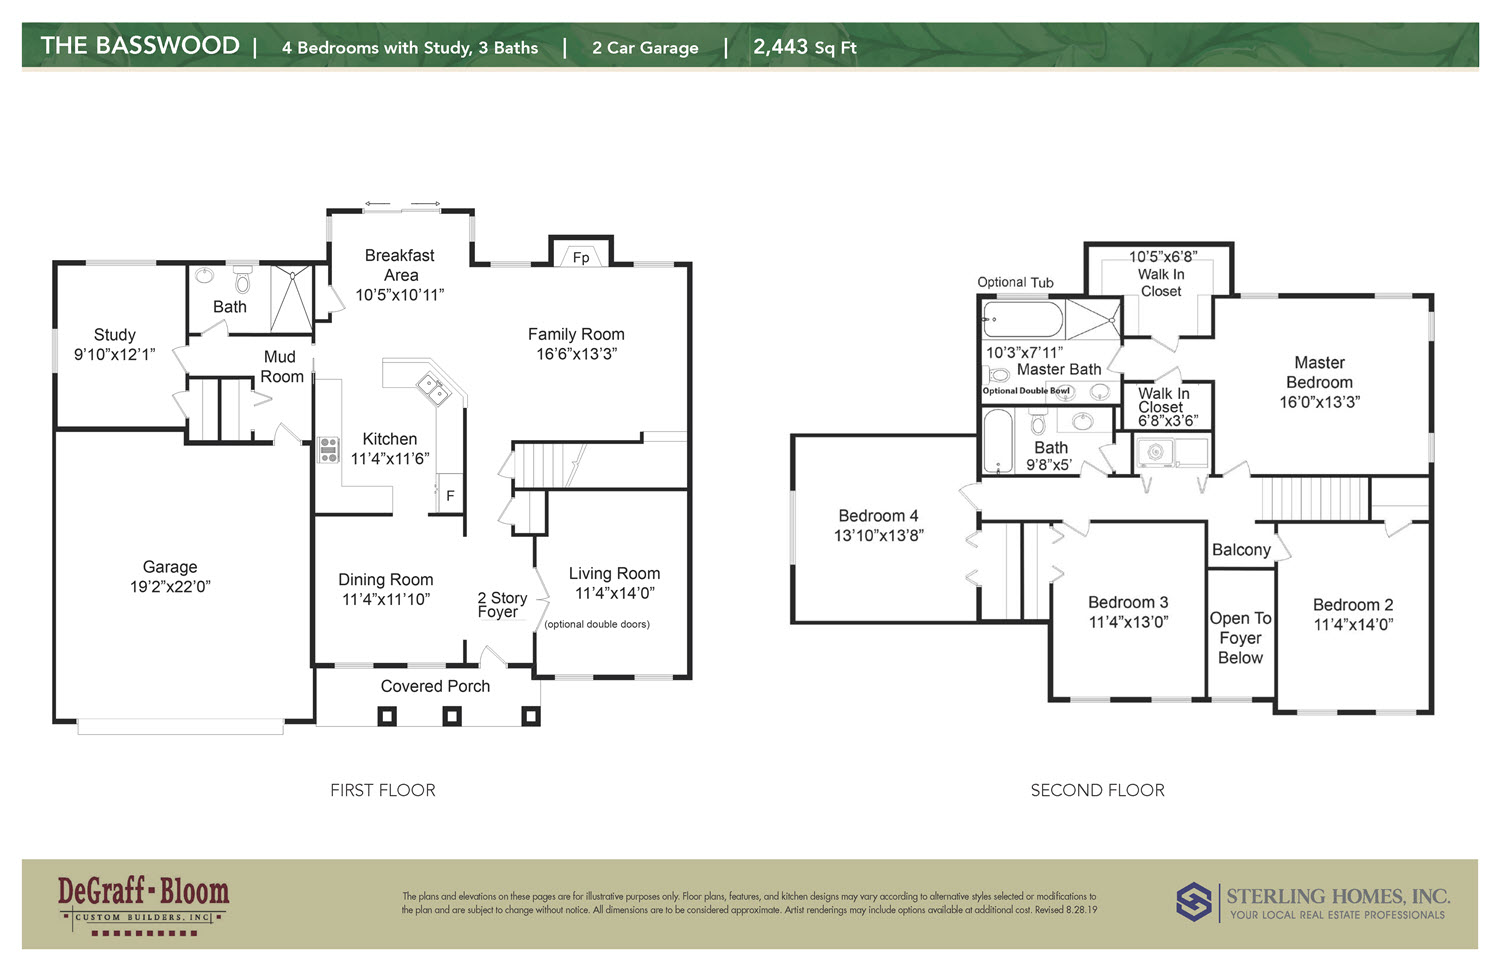 The Basswood Floorplan